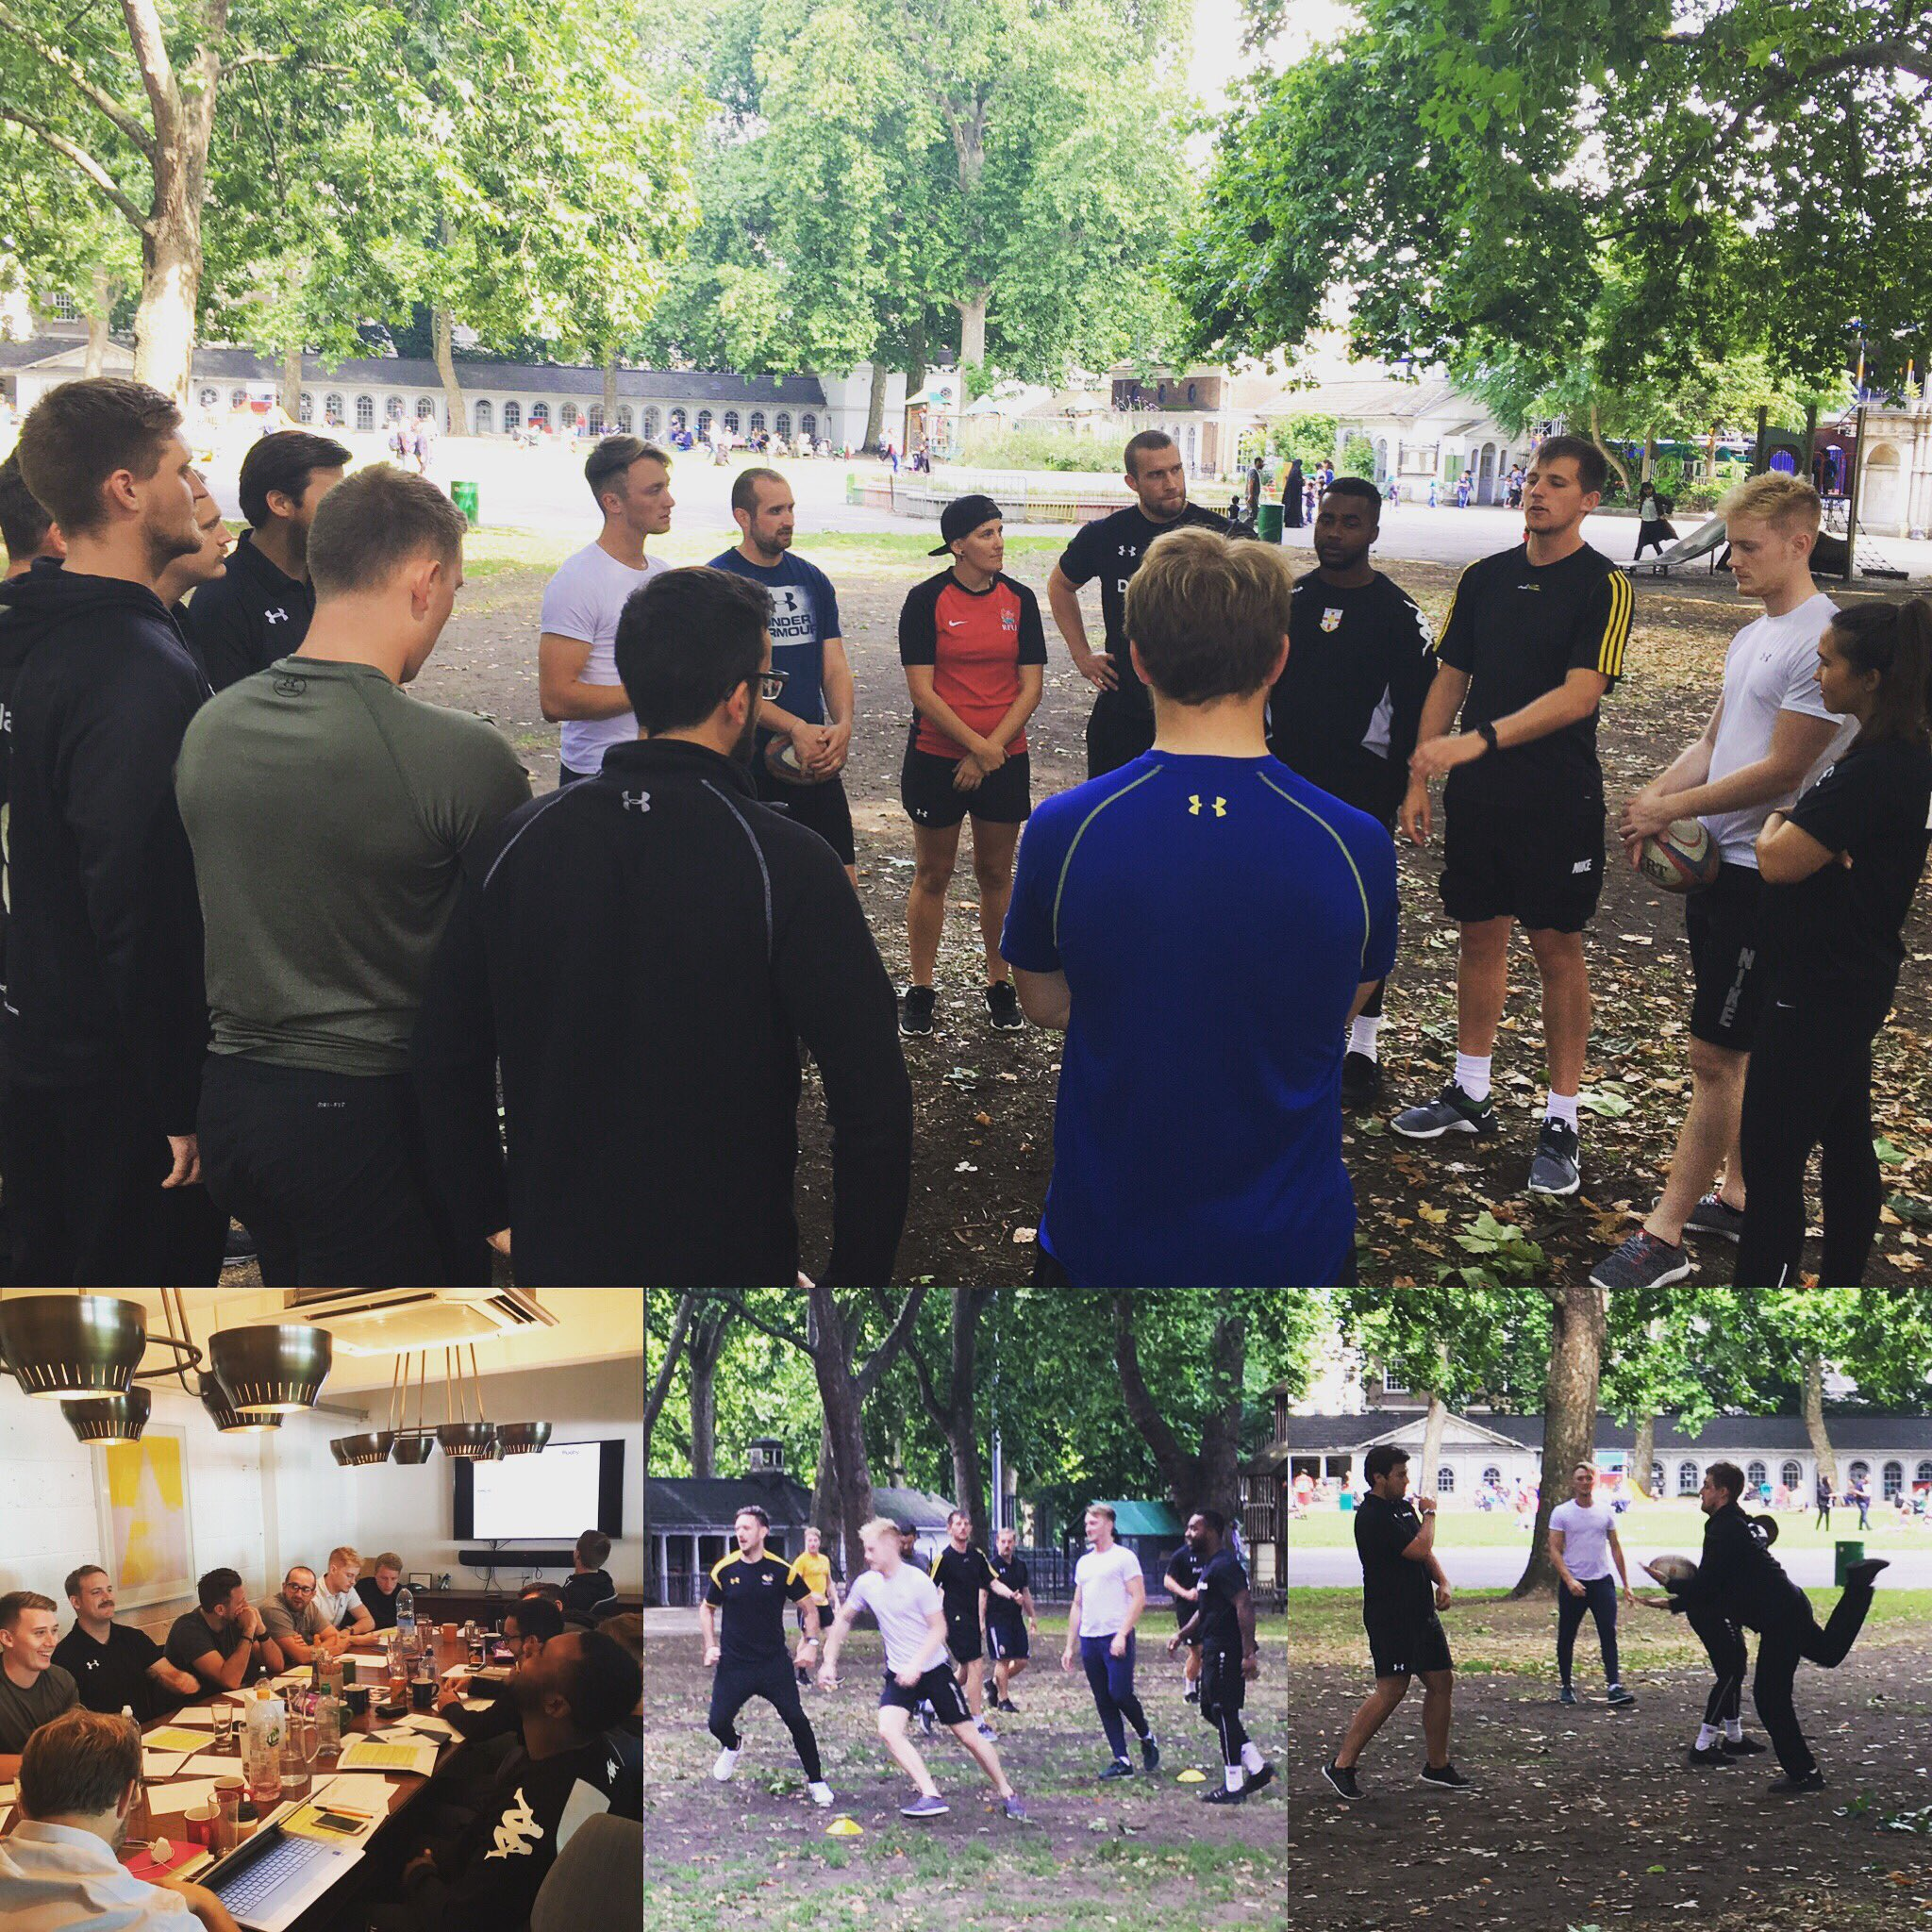 Huge thanks to @coramsfields for hosting our #RugbyWorks new team induction day! https://t.co/f4QPDI5u1M